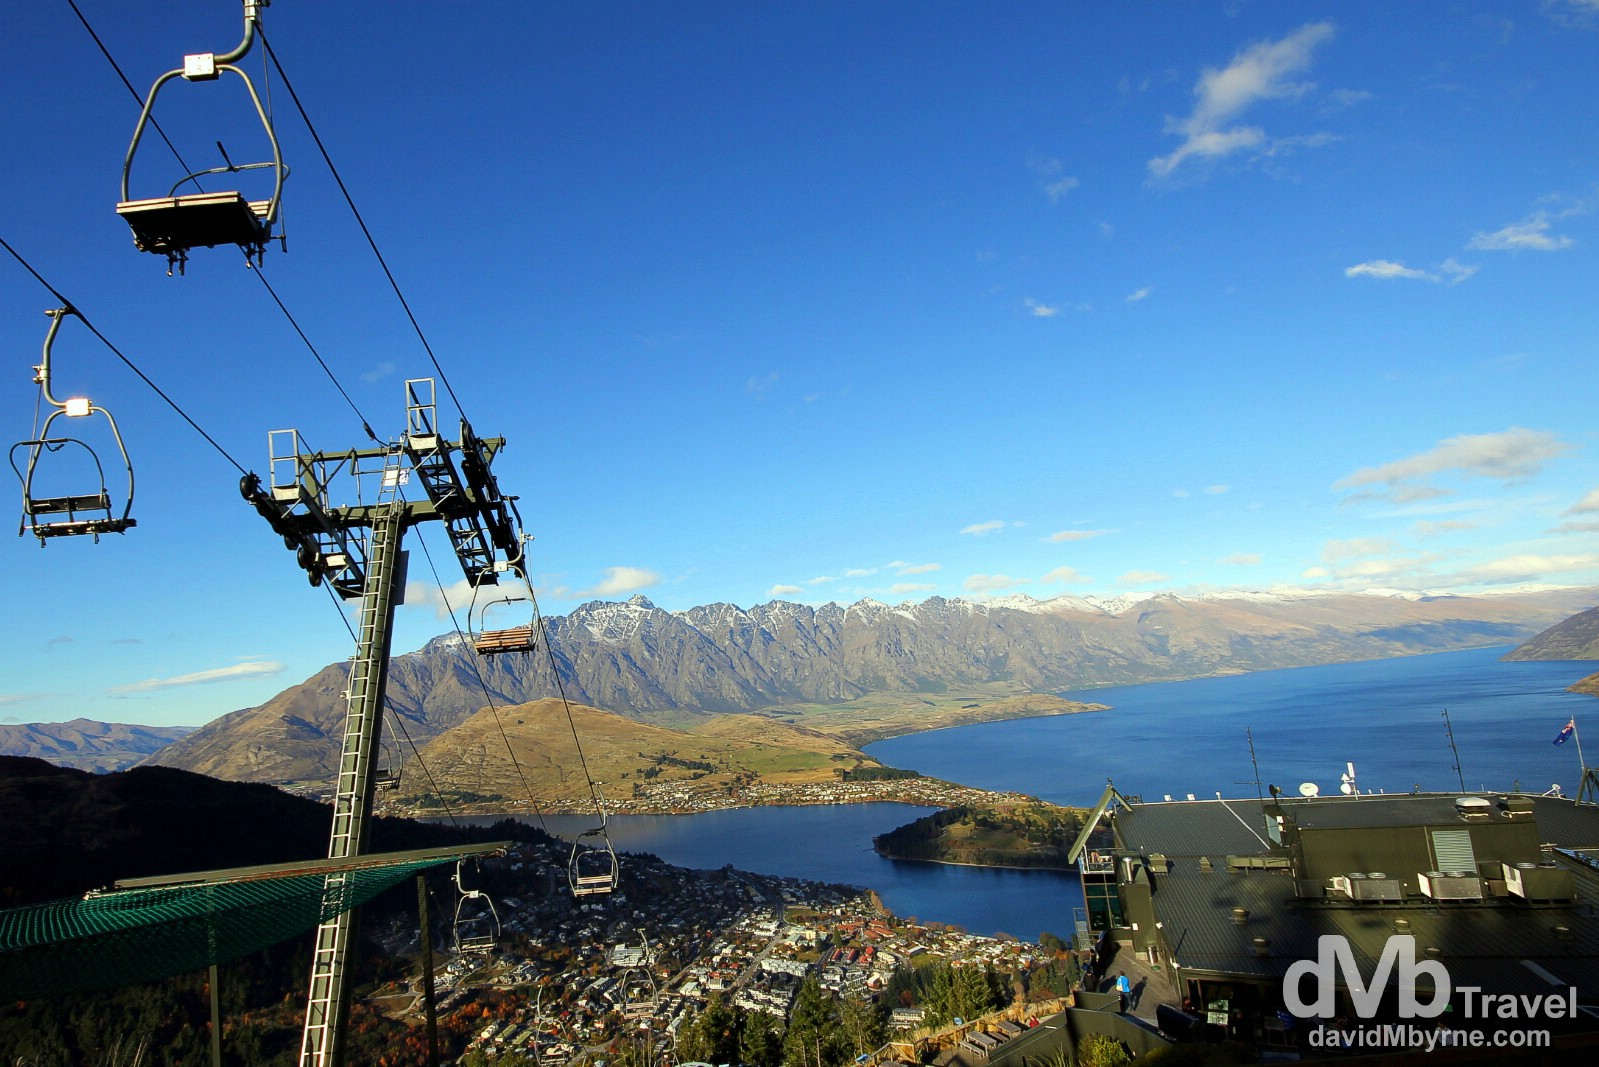 The Remarkables mountain range & Lake Wakatipu as seen from Bob's Peak overlooking Queenstown, South Island, New Zealand. May 23rd 2012.